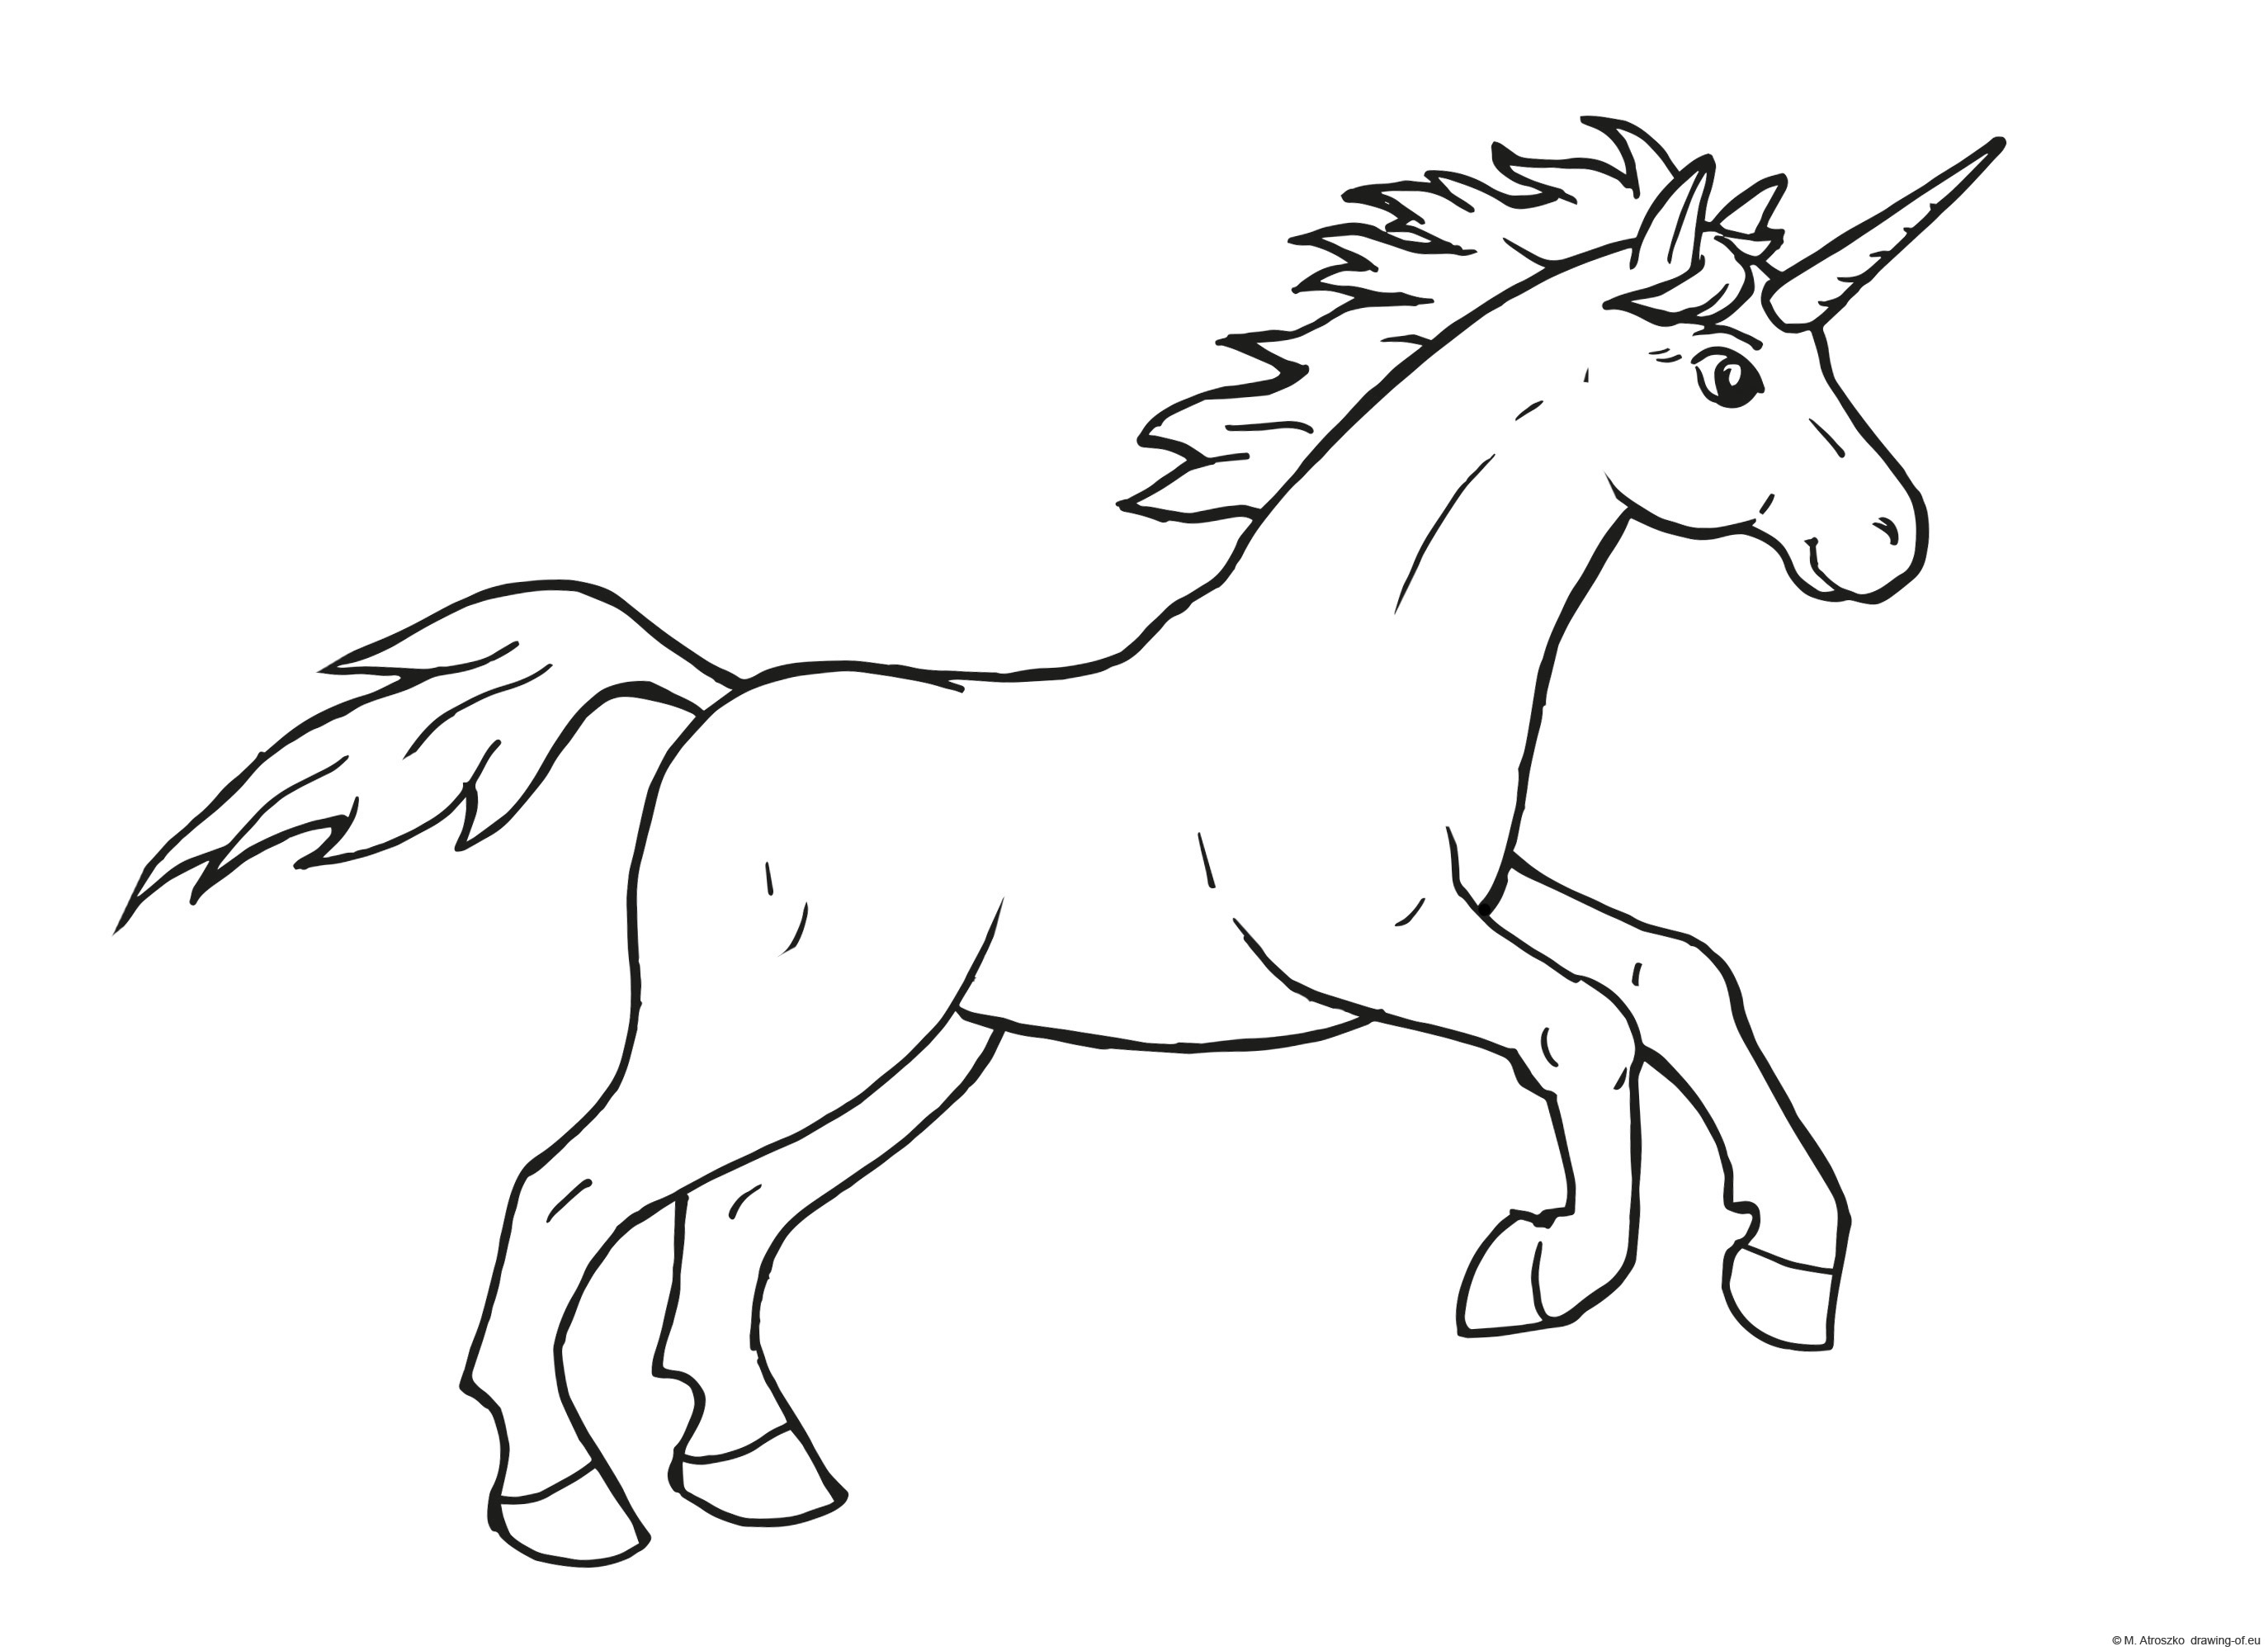 Drawing of unicorn for print